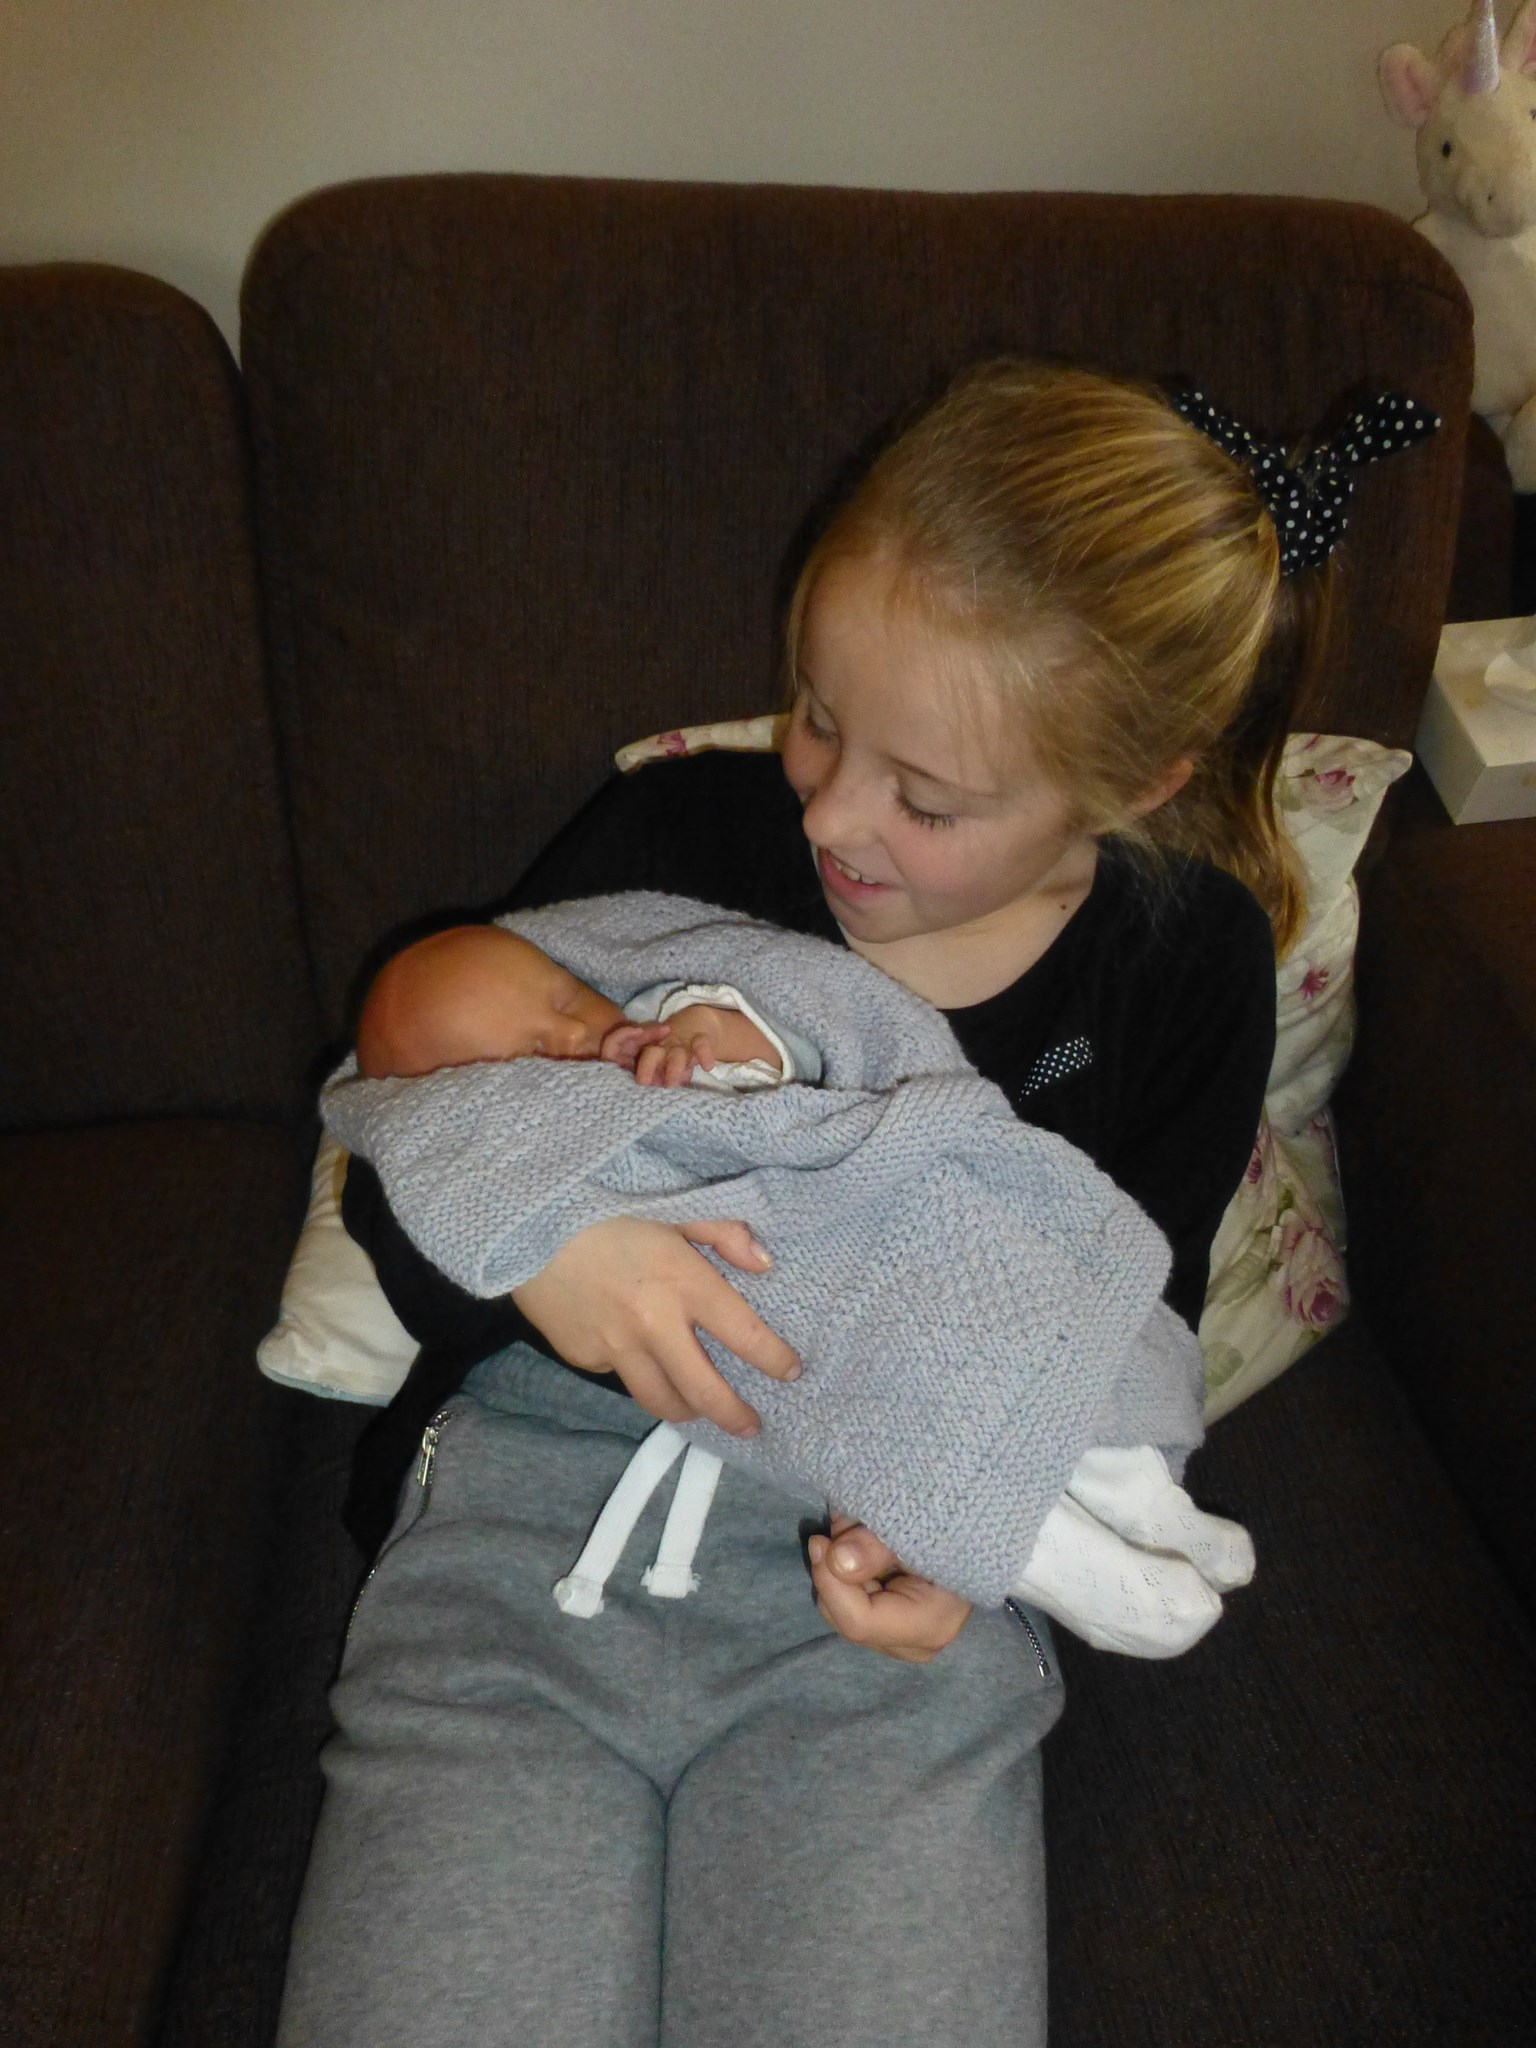 Elizabeth meeting her youngest cousin Matilda. Elizabeth was so woried how to hold her as she was so small but she did a brilliant job of cuddling. A memory we will treasure forever xXx